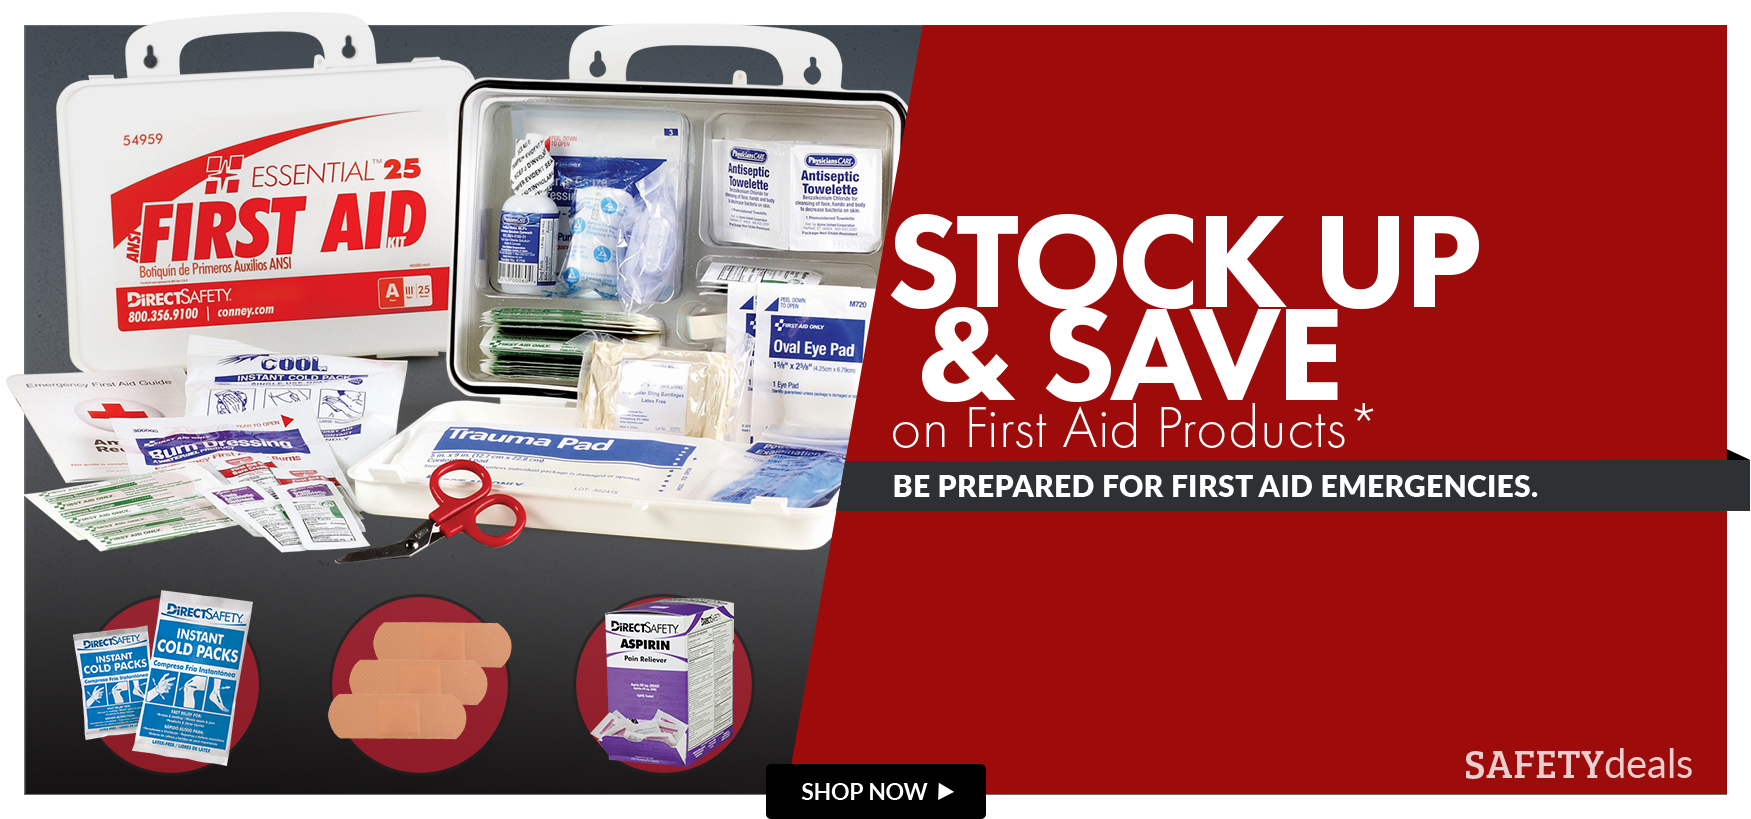 First Aid Promo 30% off First Aid